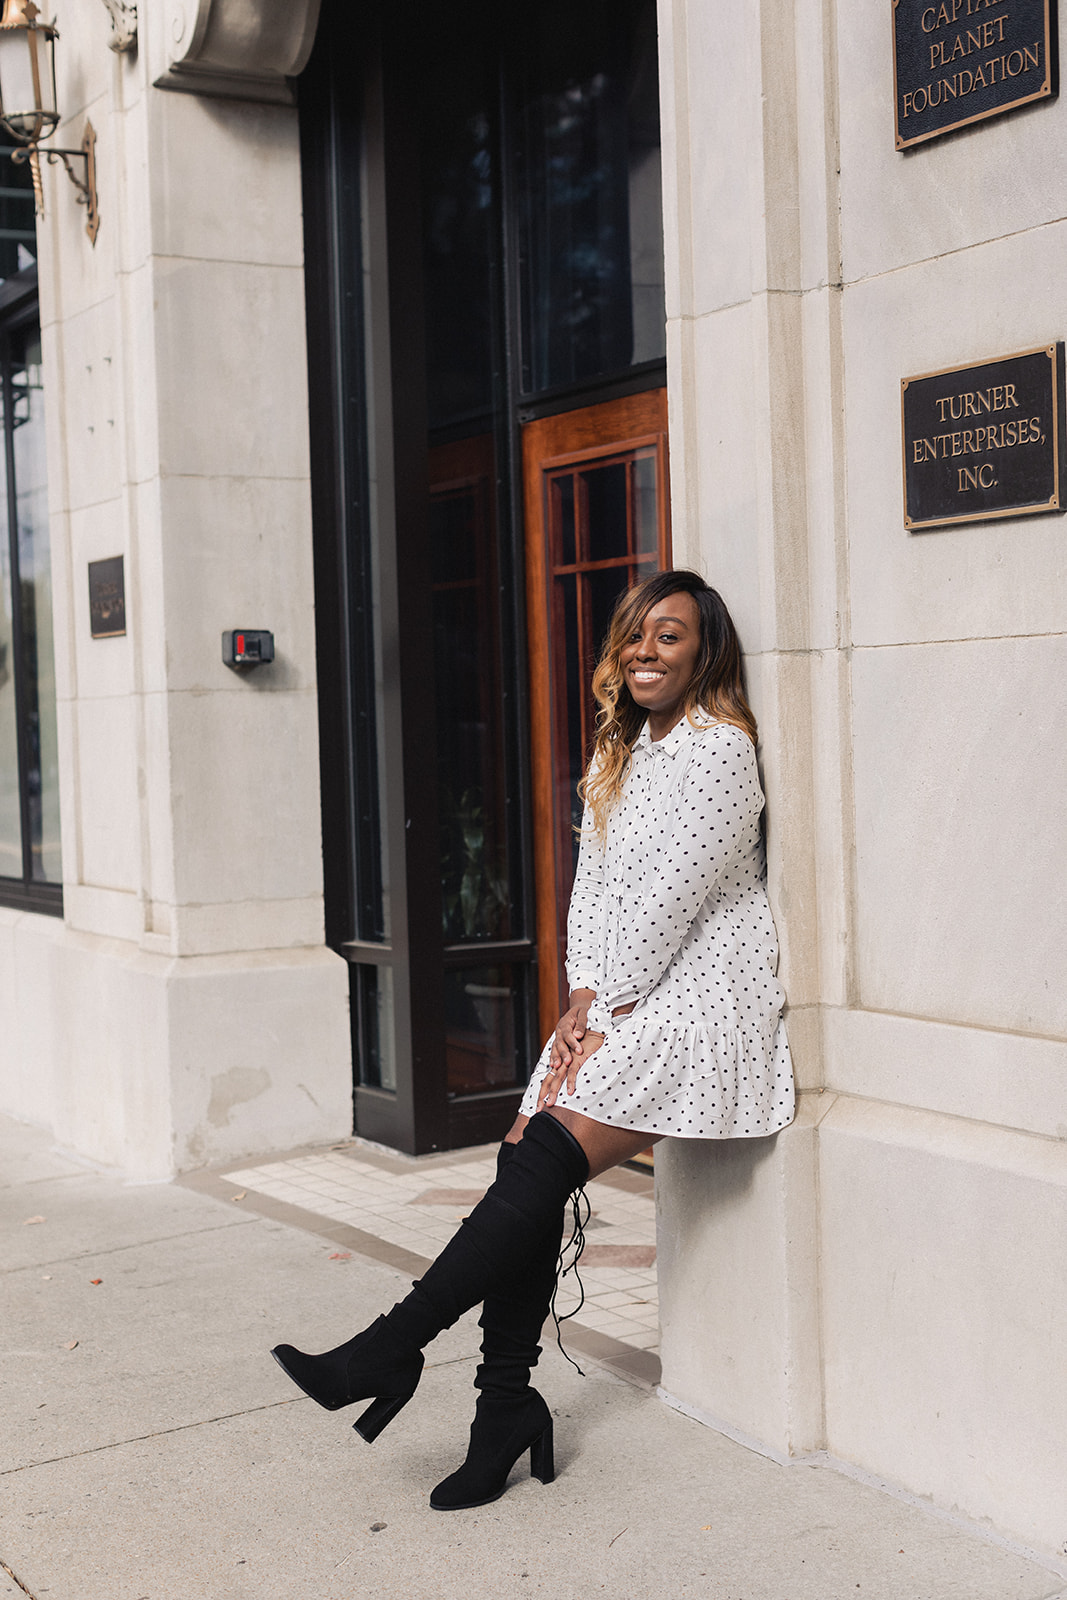 Jordan Taylor C - 6 Free Apps that EVERY Blogger Needs, black woman in white polka dot dress and stuart weitzman over the knee leaning against a wall, apps every blogger, apps every blogger needs, apps every blogger